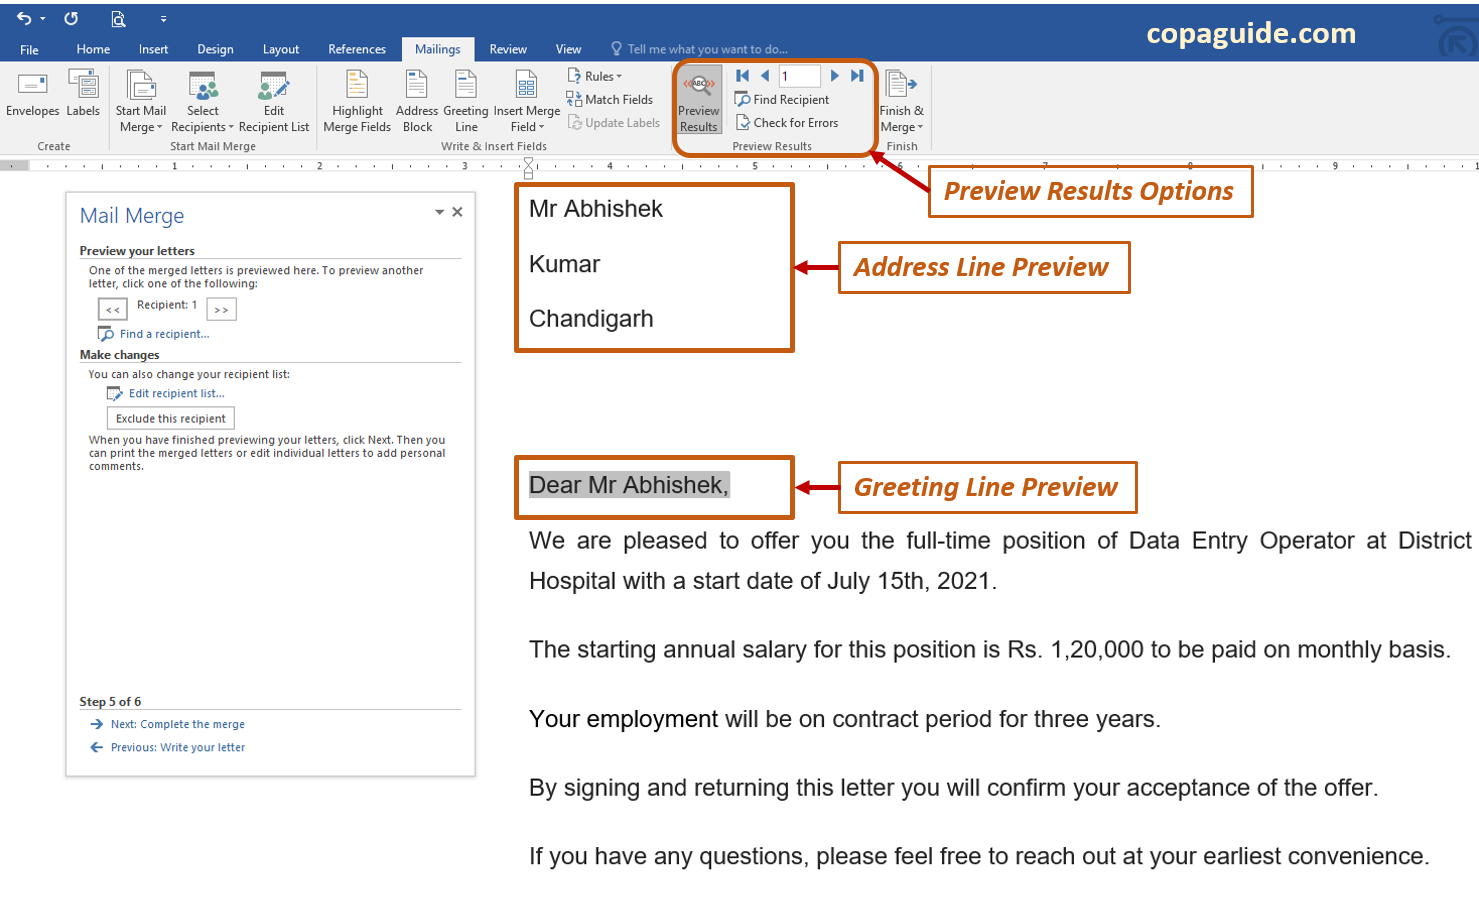 Mail Merge Wizard Preview your letters